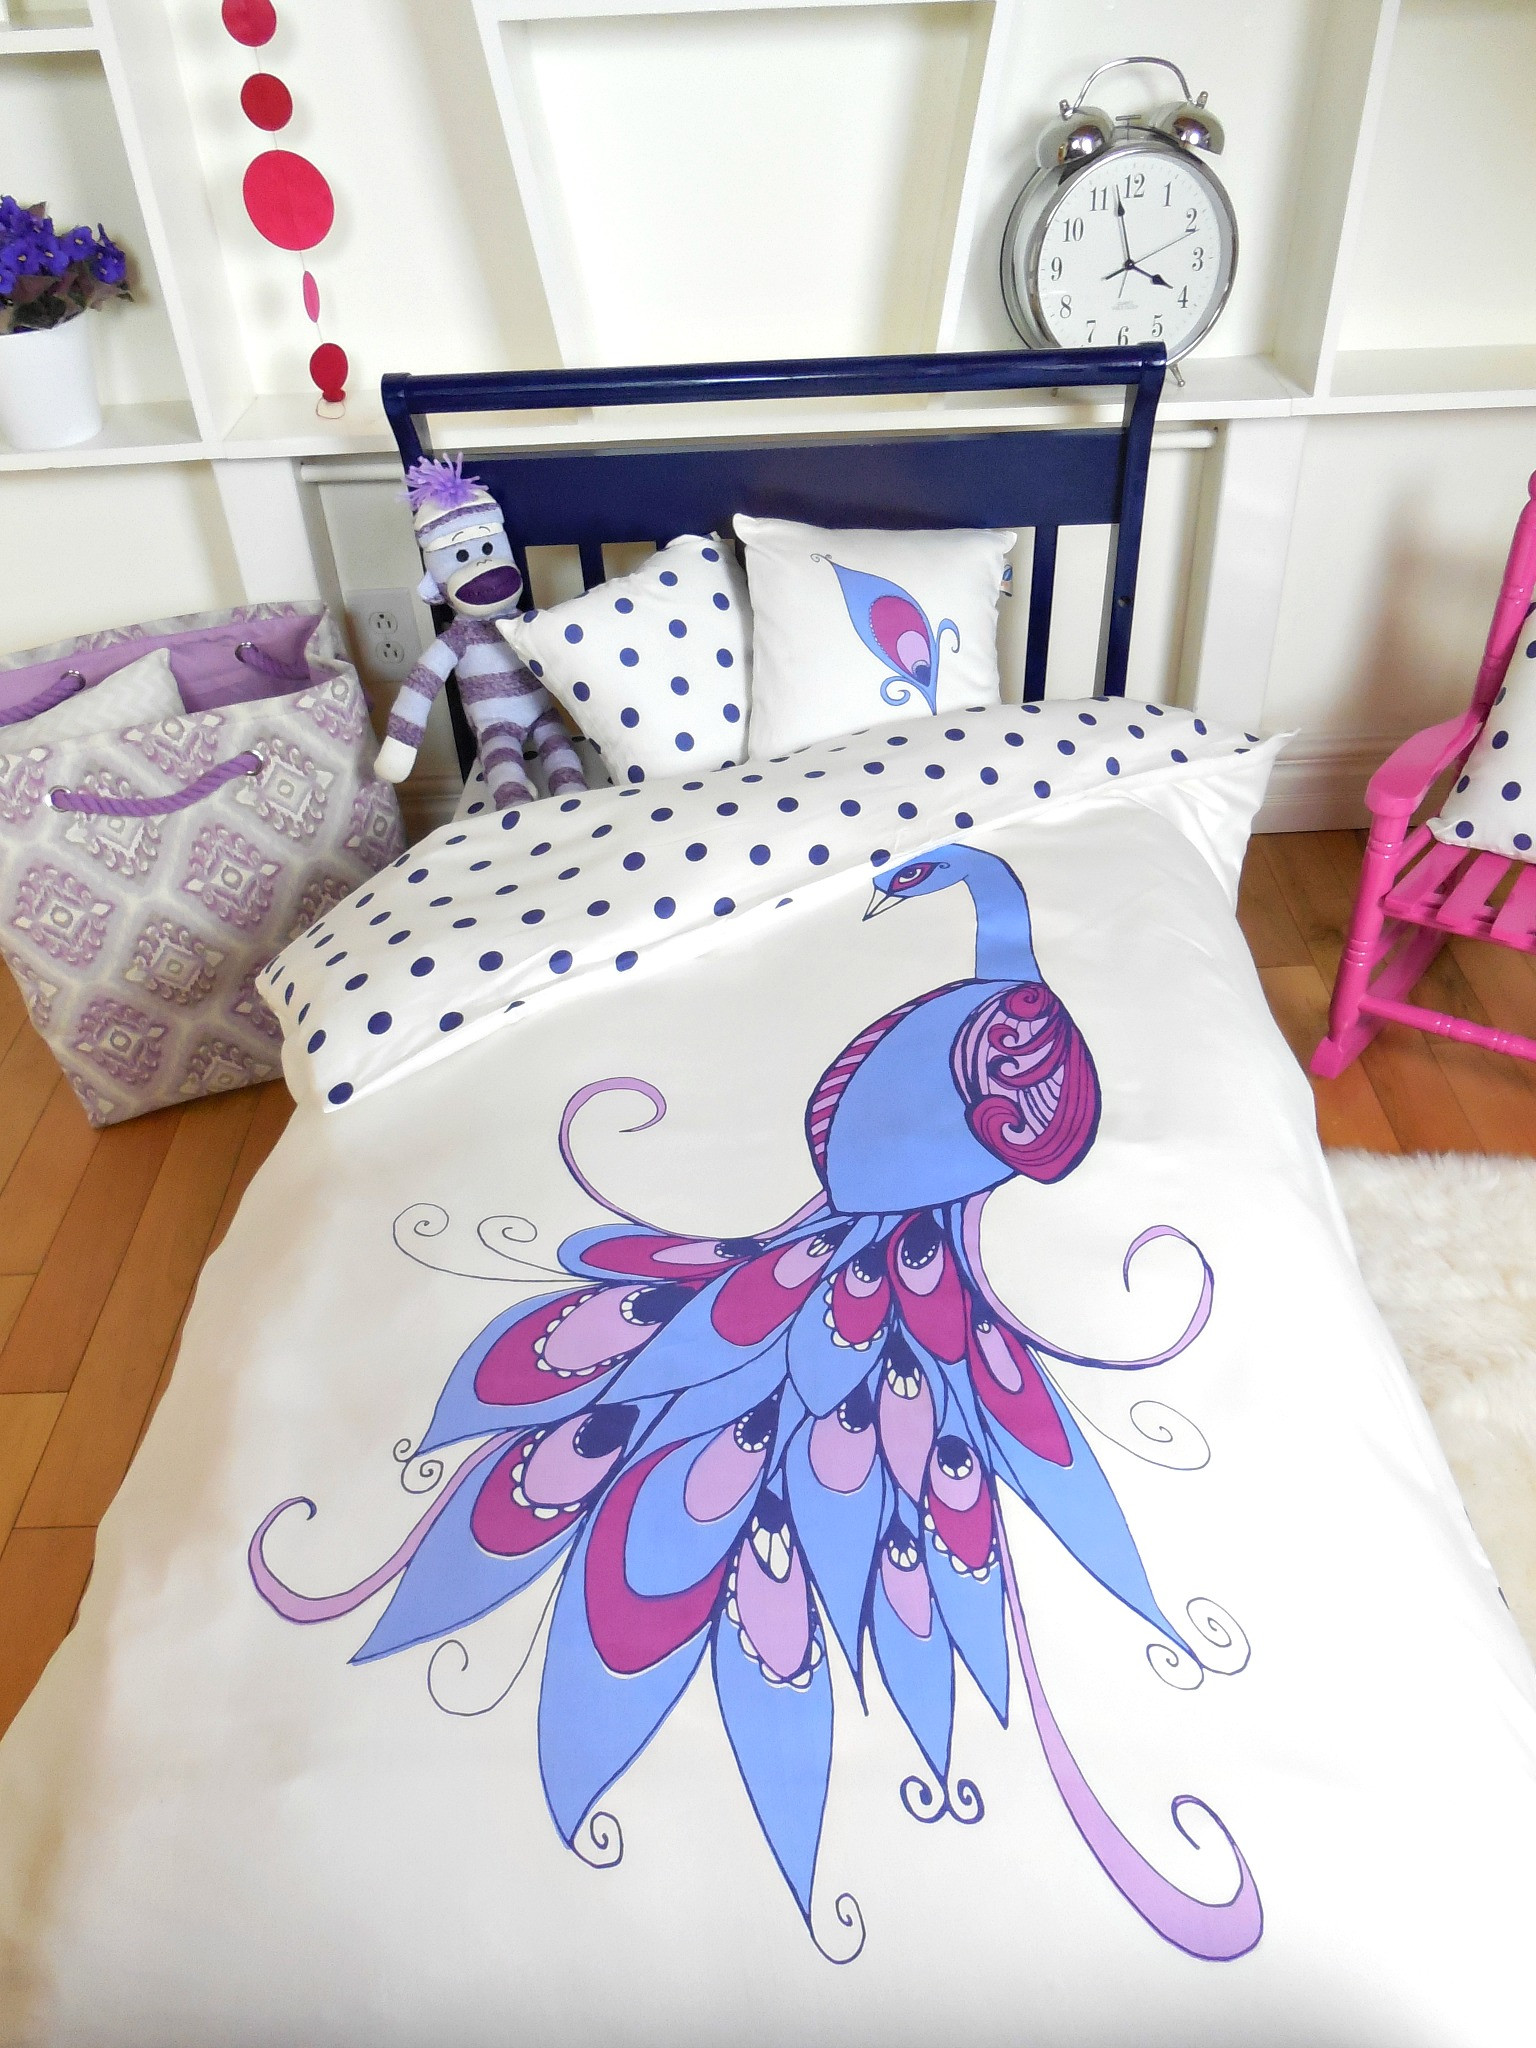 Peacock Pattern Bedding | Peacock Sheets | Peacock Bedding